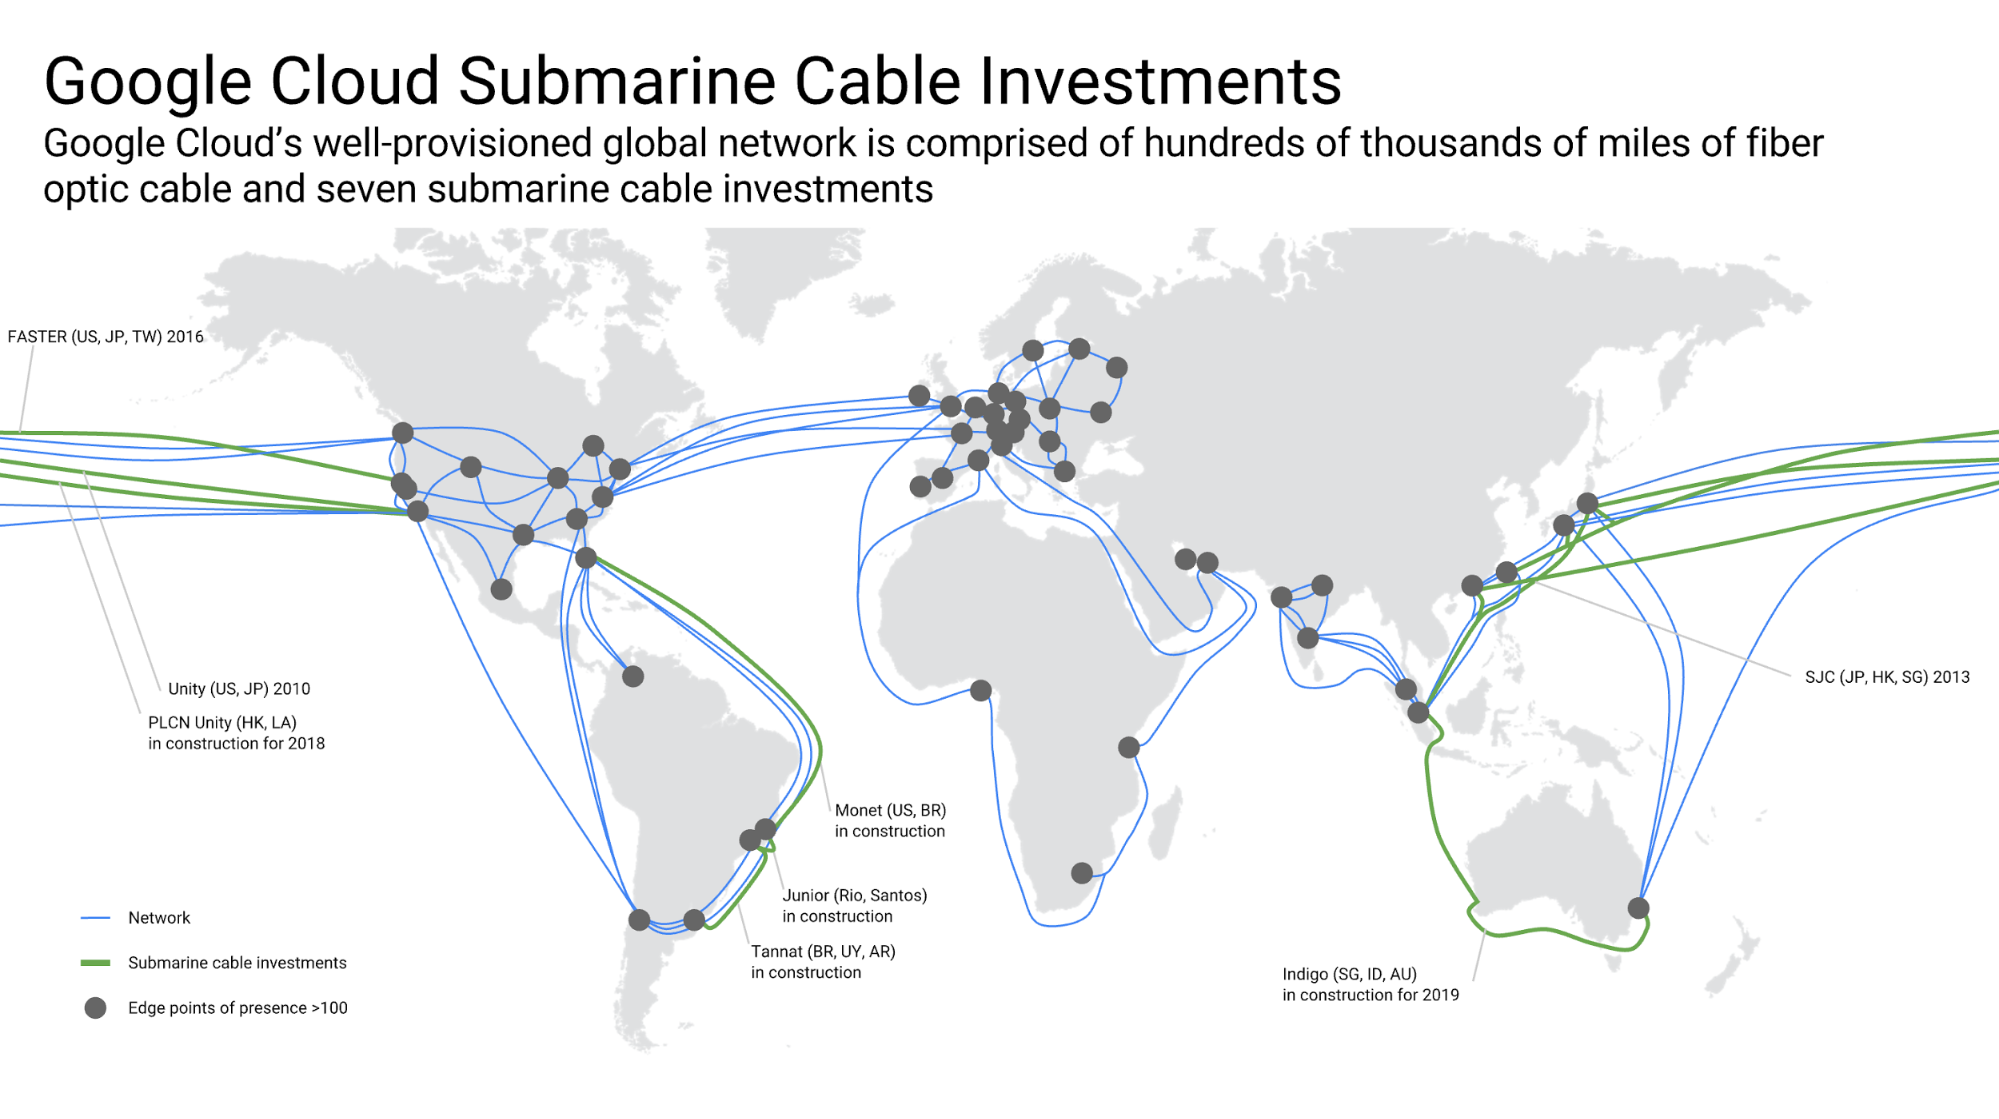 Google invests in INDIGO undersea cable to improve cloud ...